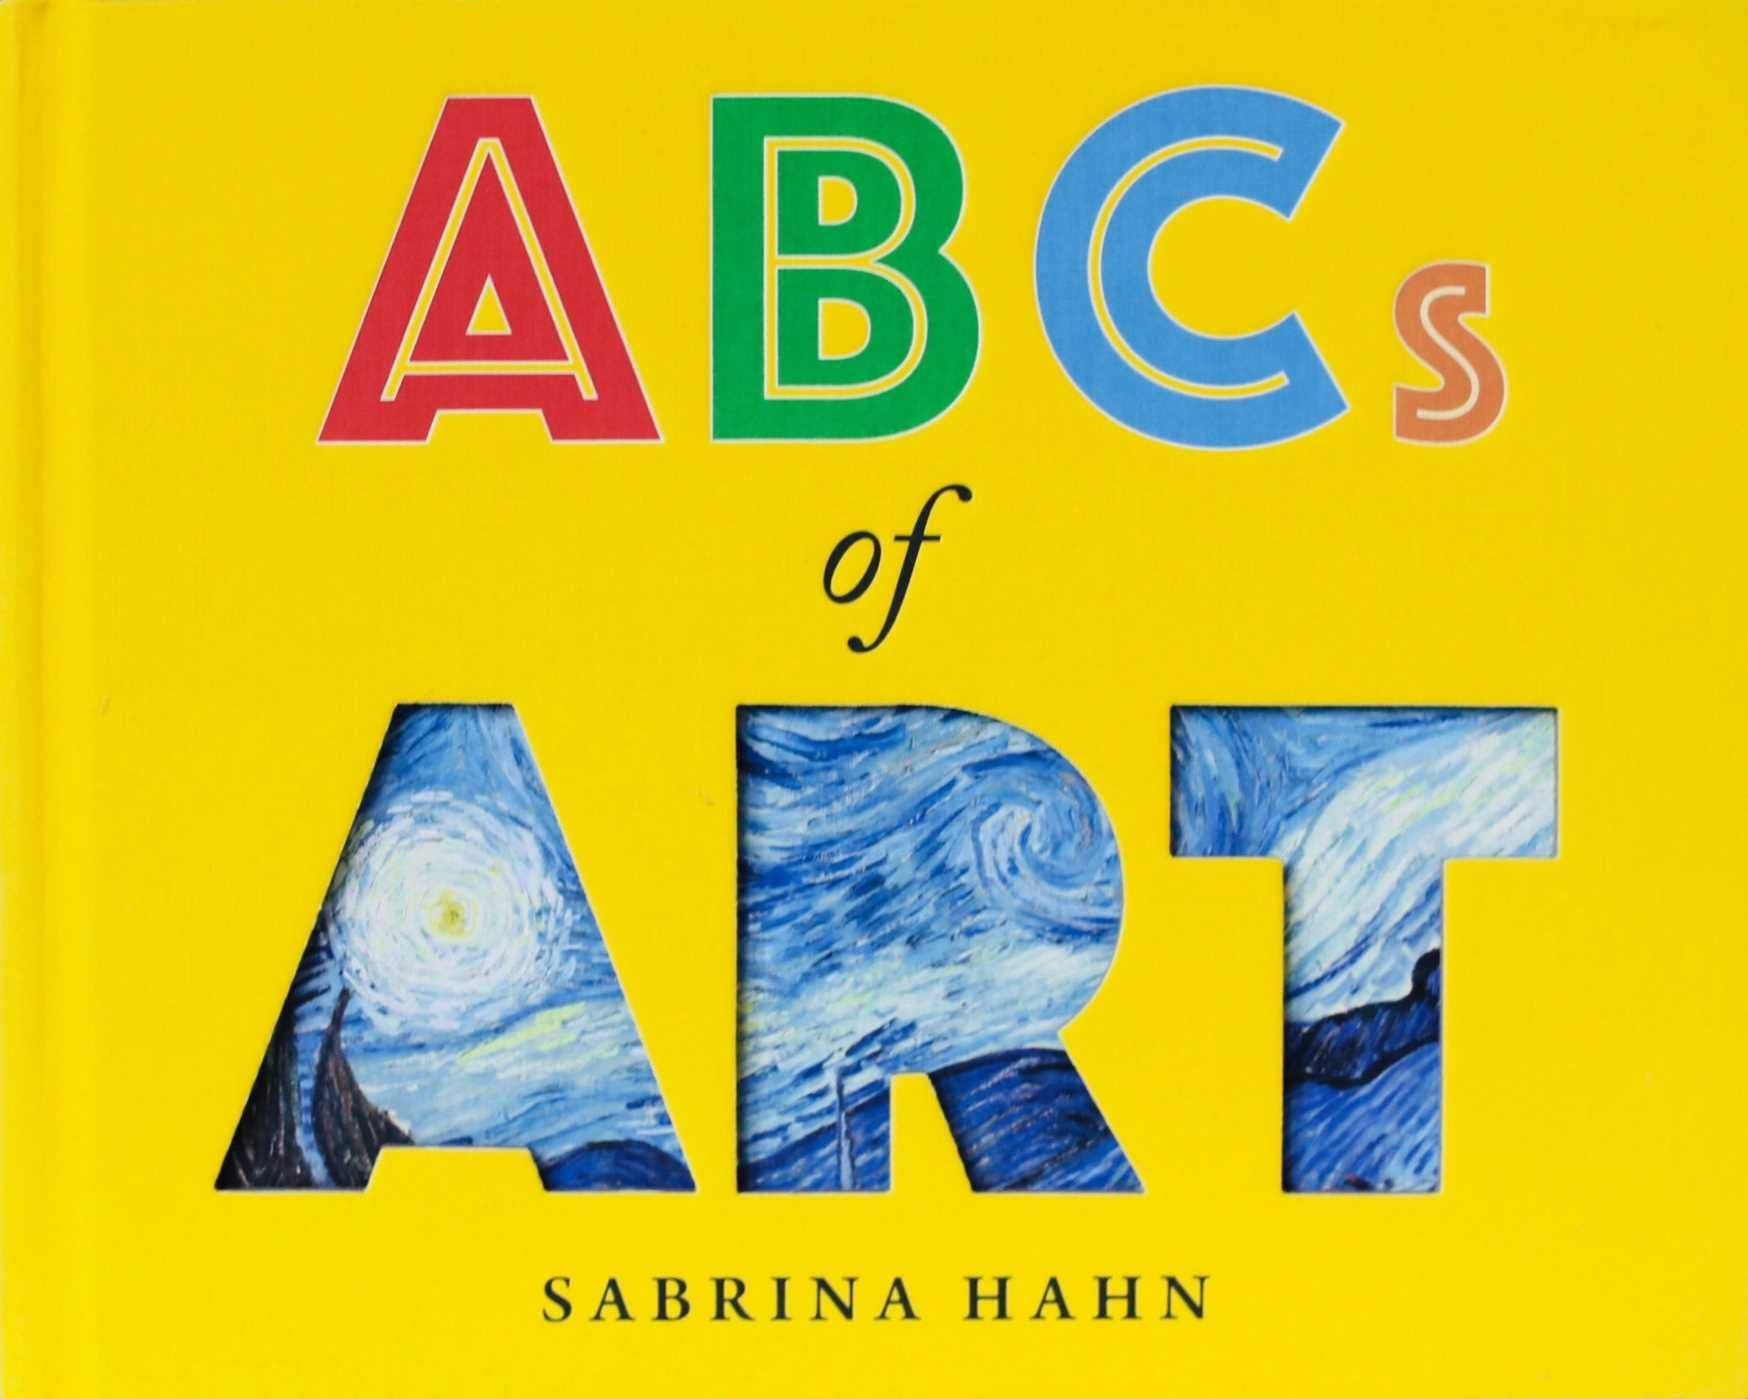 ABCs of Art (Sabrina Hahn's Art & Concepts for Kids)